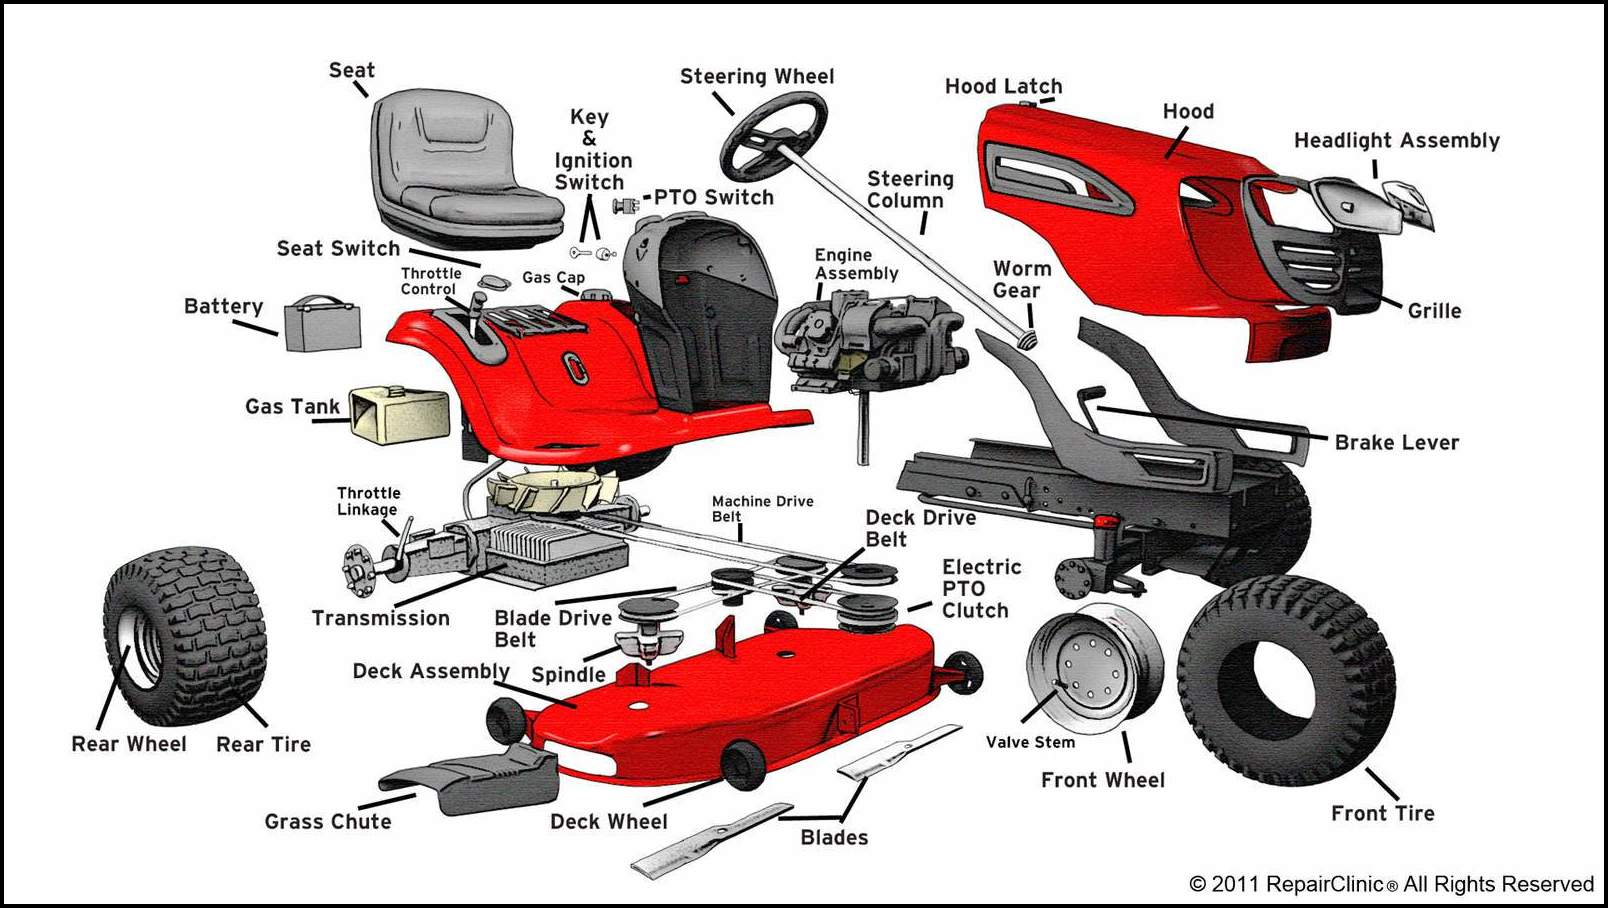 hight resolution of craftsman riding lawn mower diagrams wiring diagram portal craftsman riding lawn mower engine diagram craftsman riding lawn mower diagrams